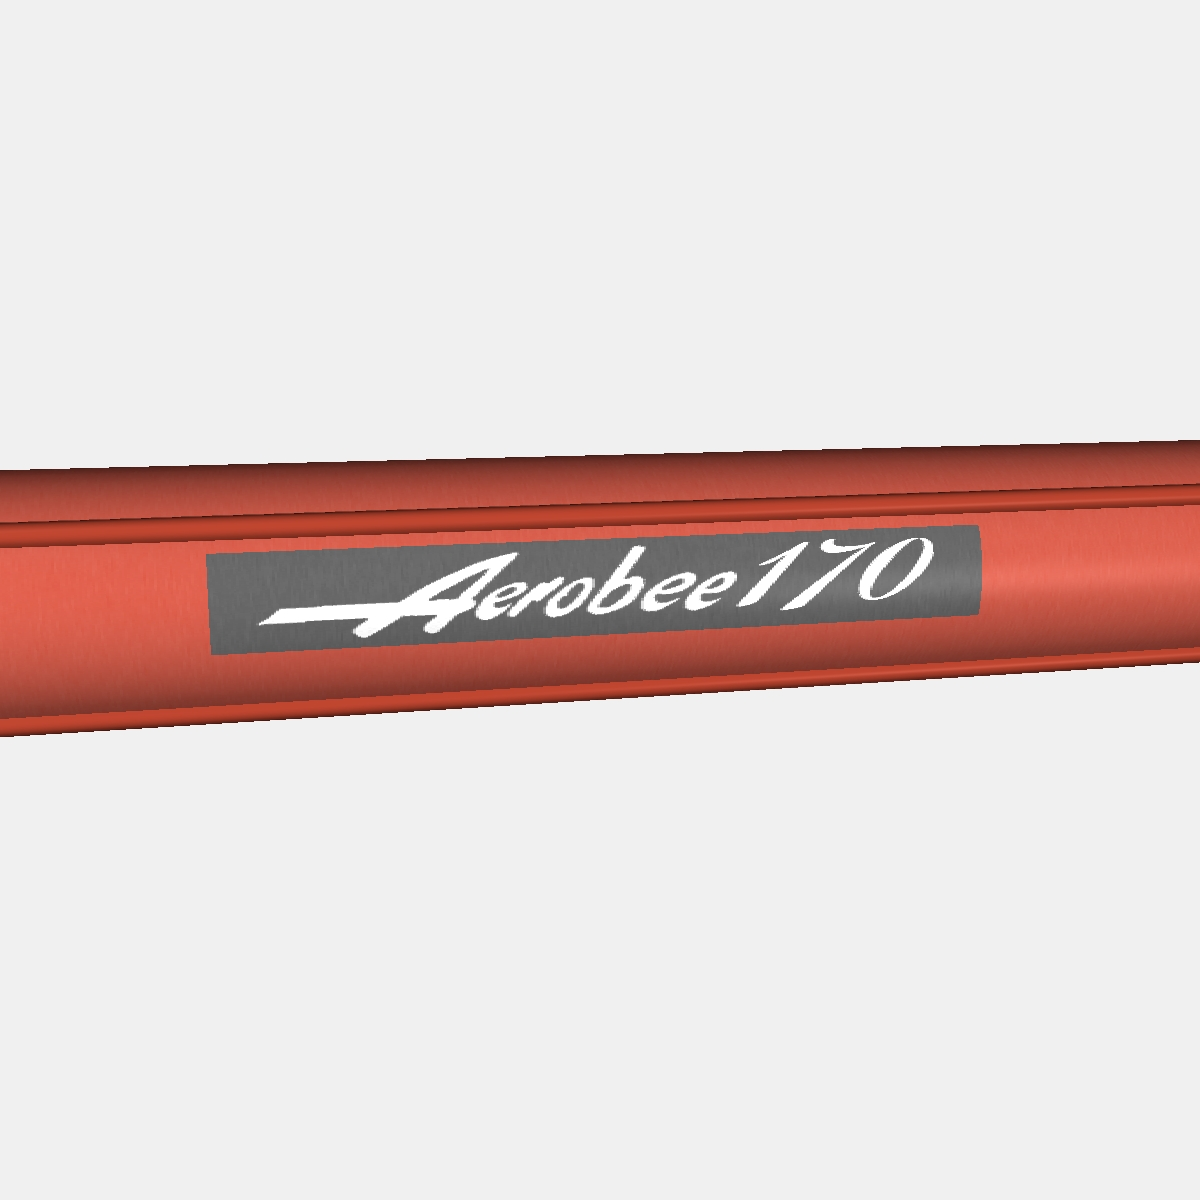 Aerobee 170 Rocket 3d model 3ds dxf fbx blend cob dae X  obj 166039